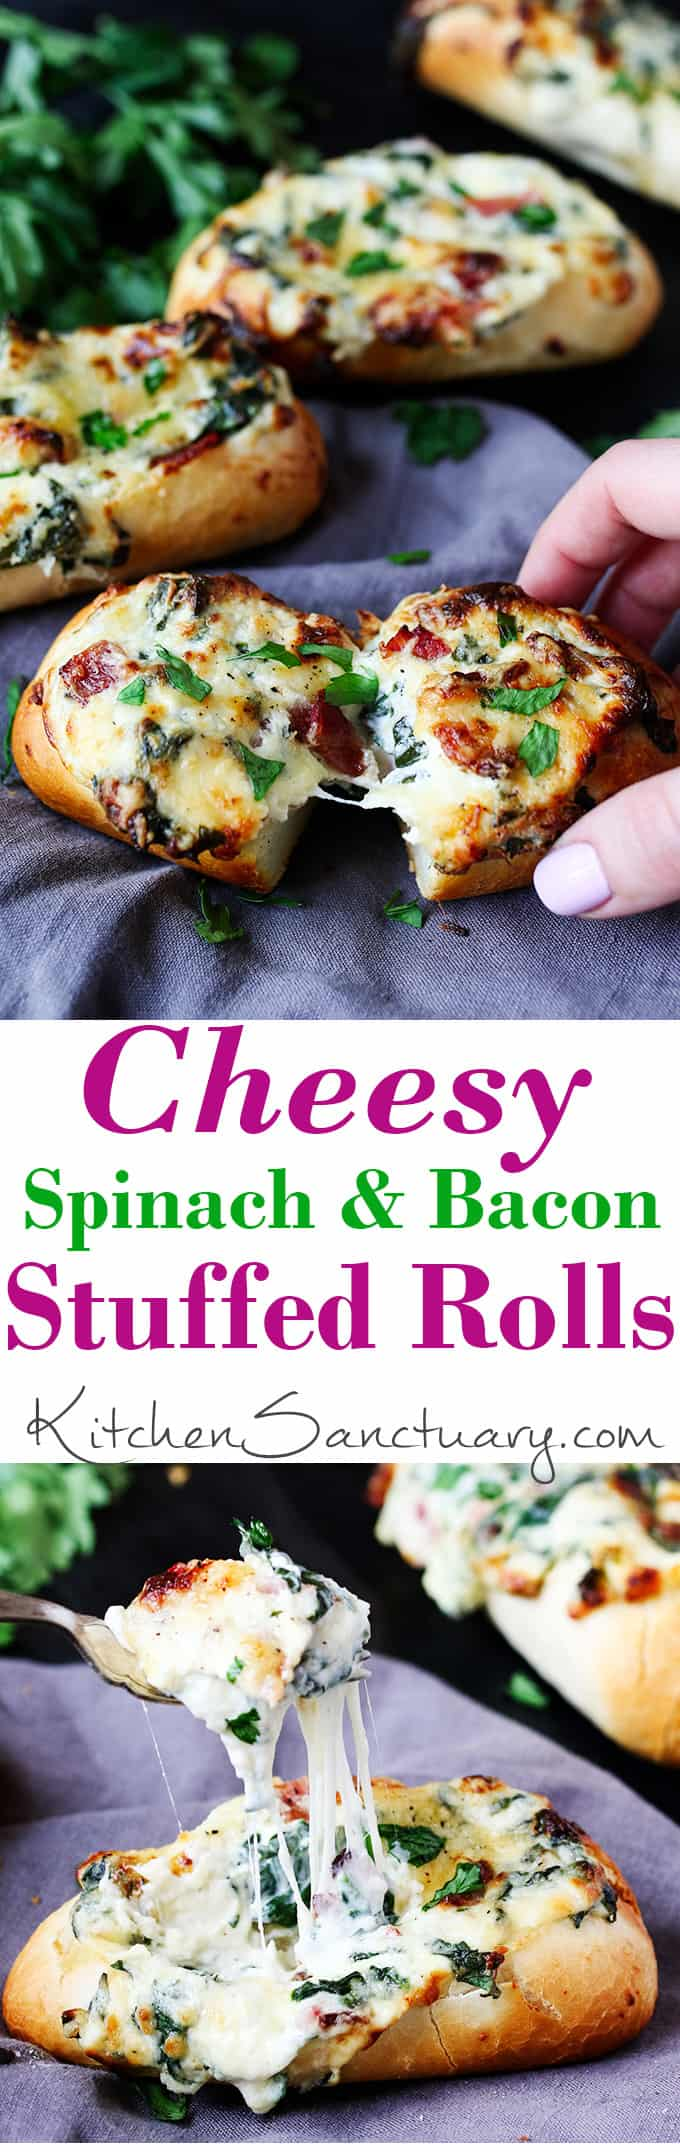 These stuffed cheesy breads with spinach and bacon use part-baked petit pans that cook at the same time as the gooey filling. Perfect for game day!!